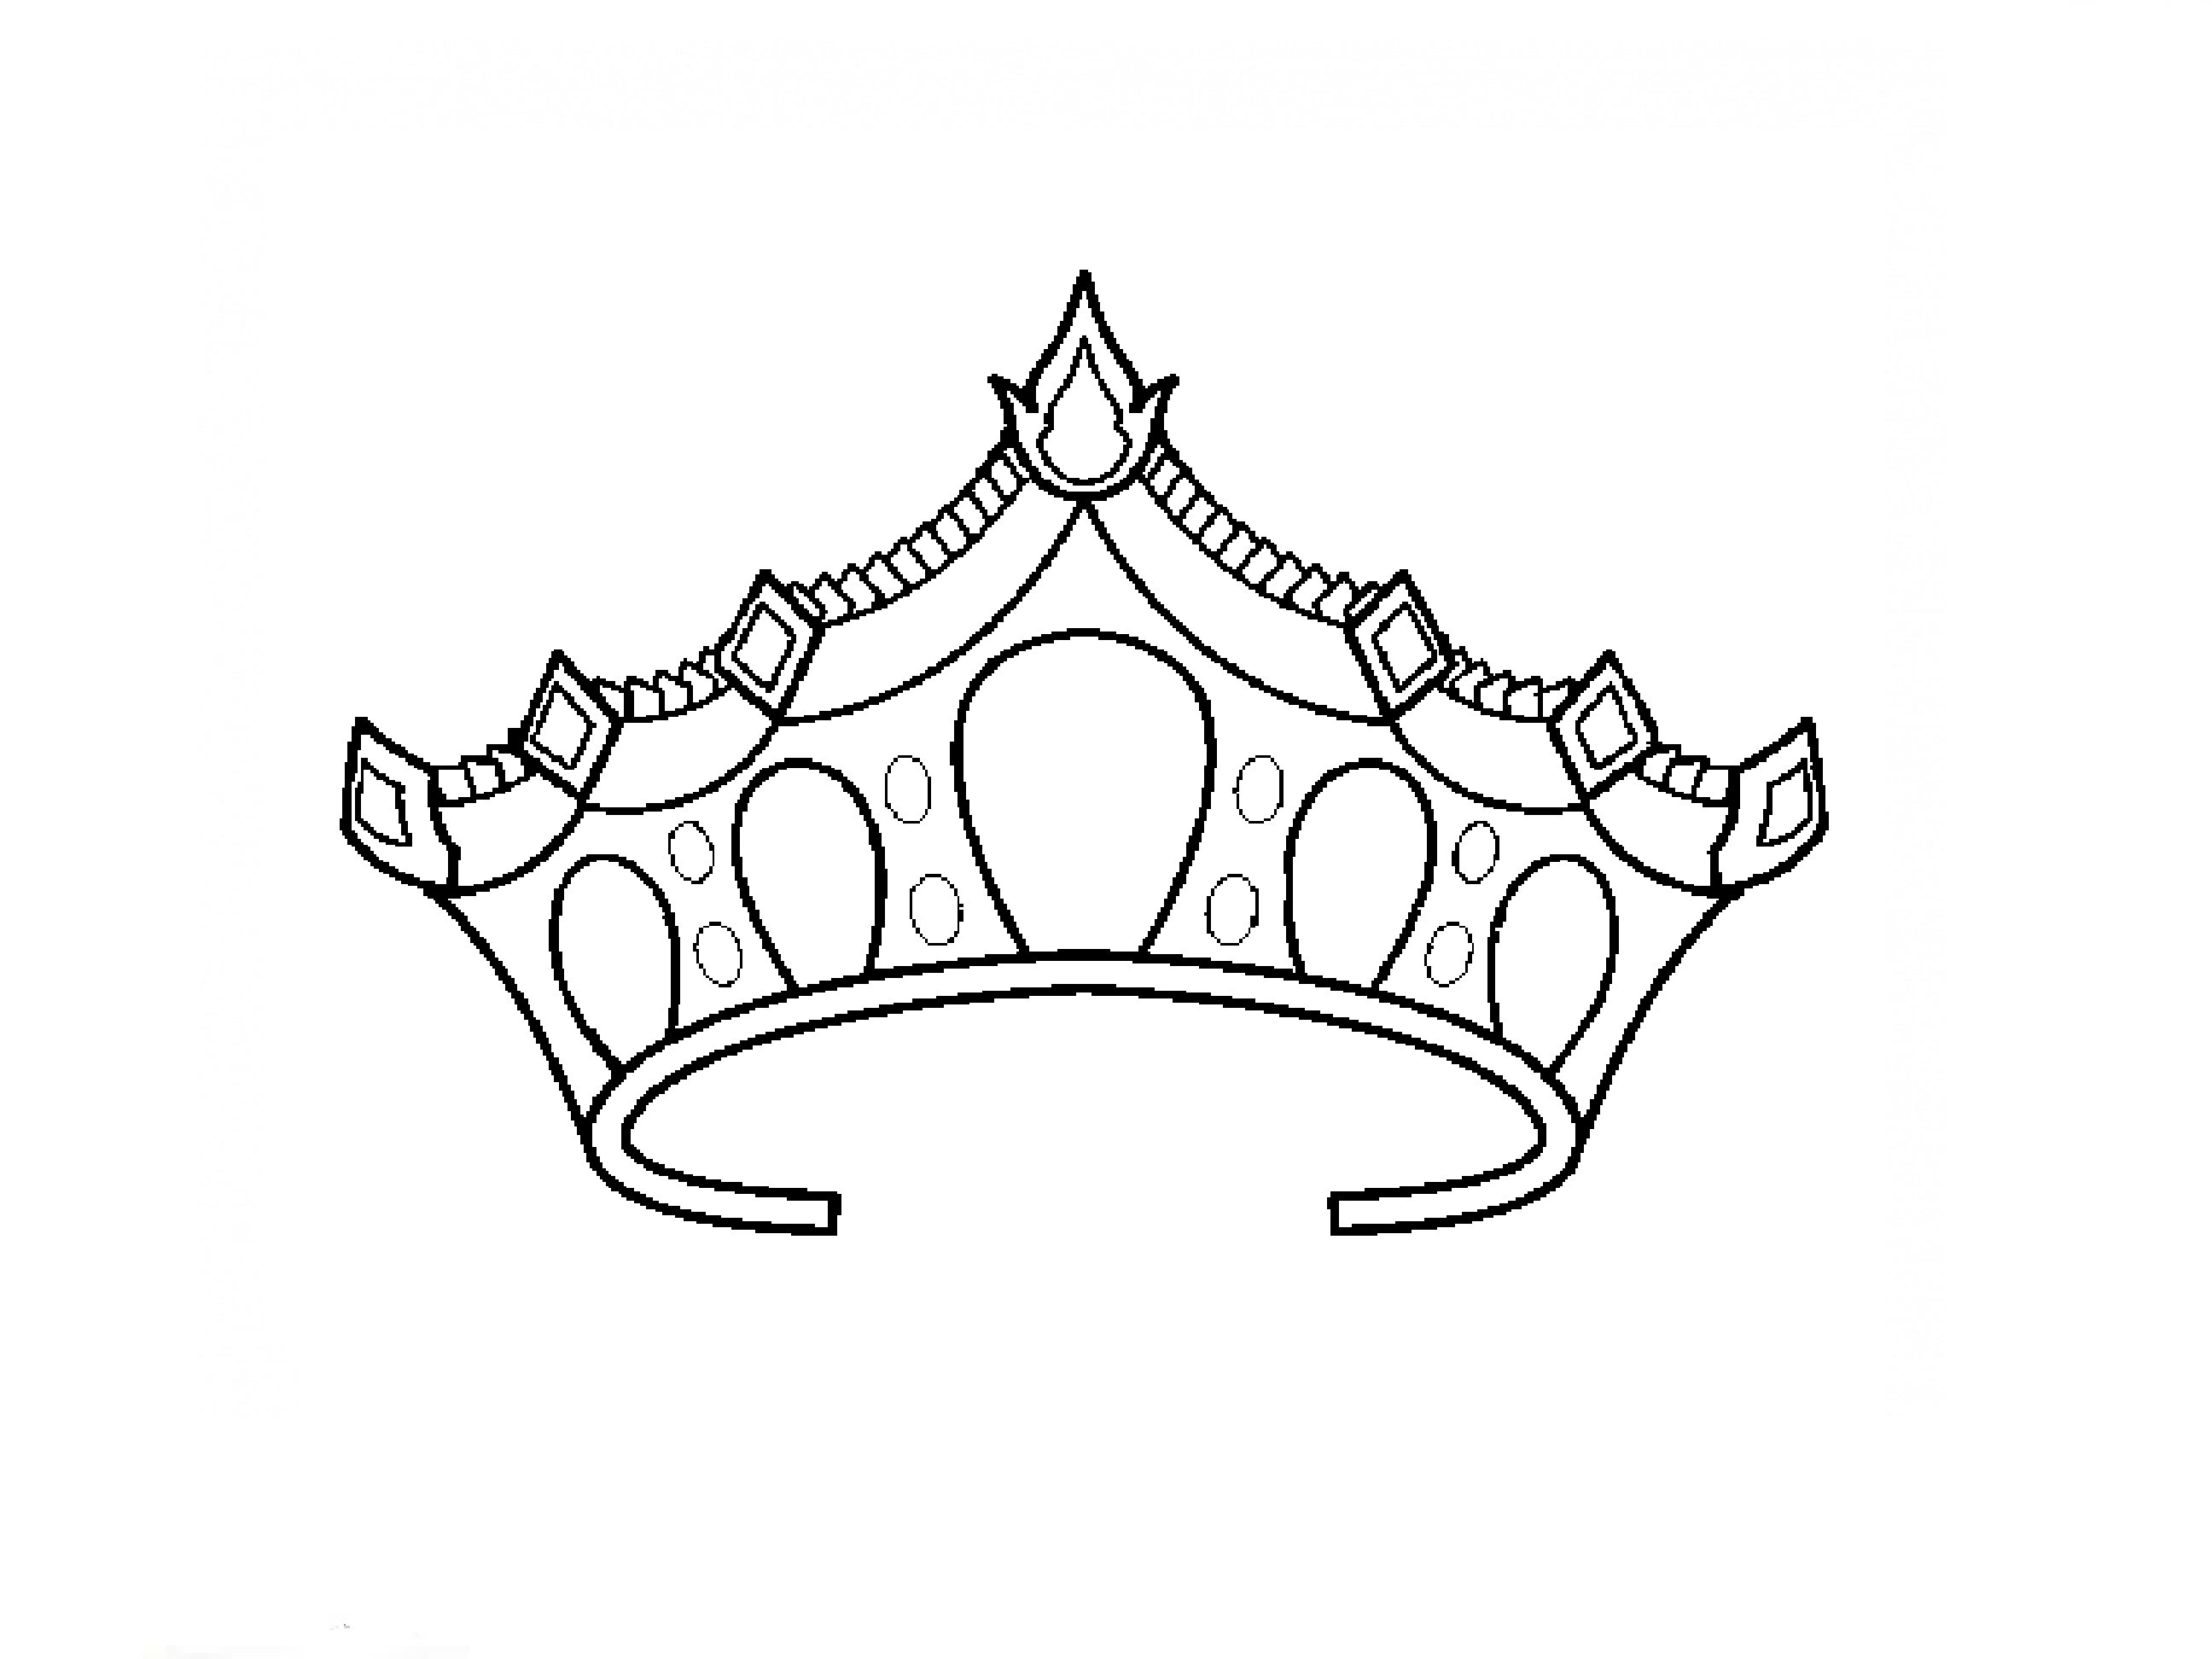 Easy Princess Crown Drawing at GetDrawings.com | Free for ...